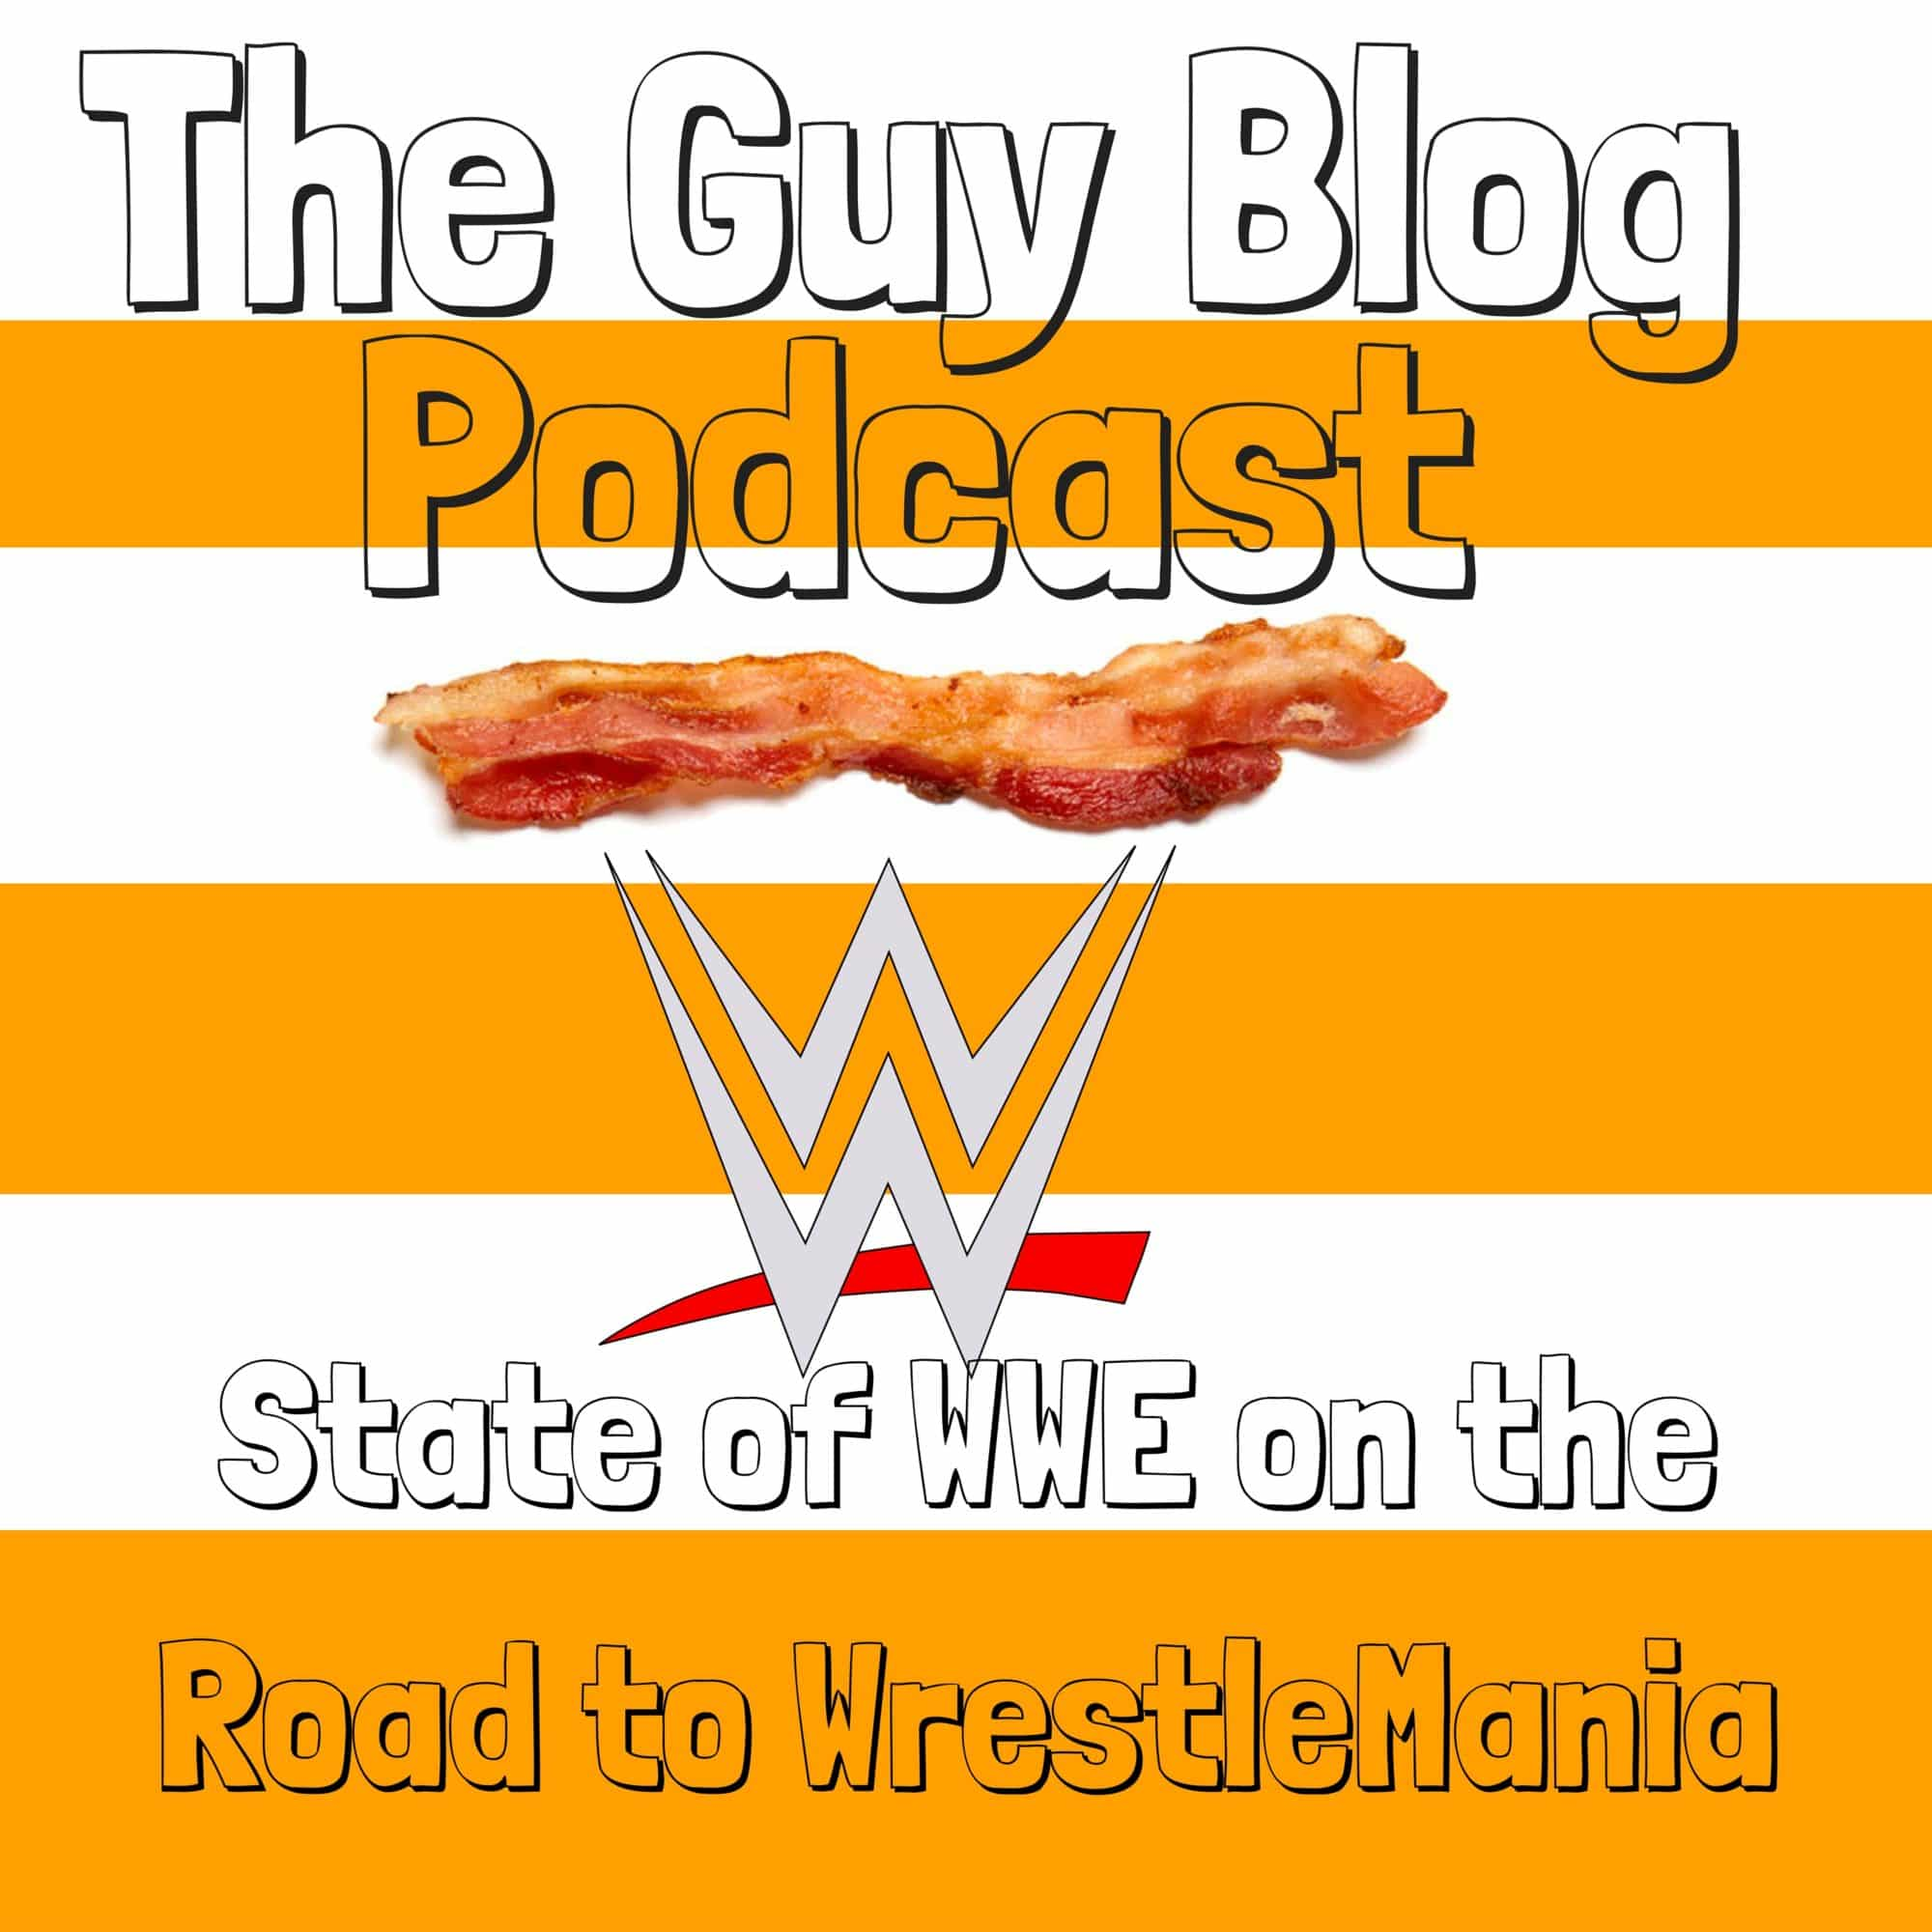 State of the WWE | The Guy Blog Podcast